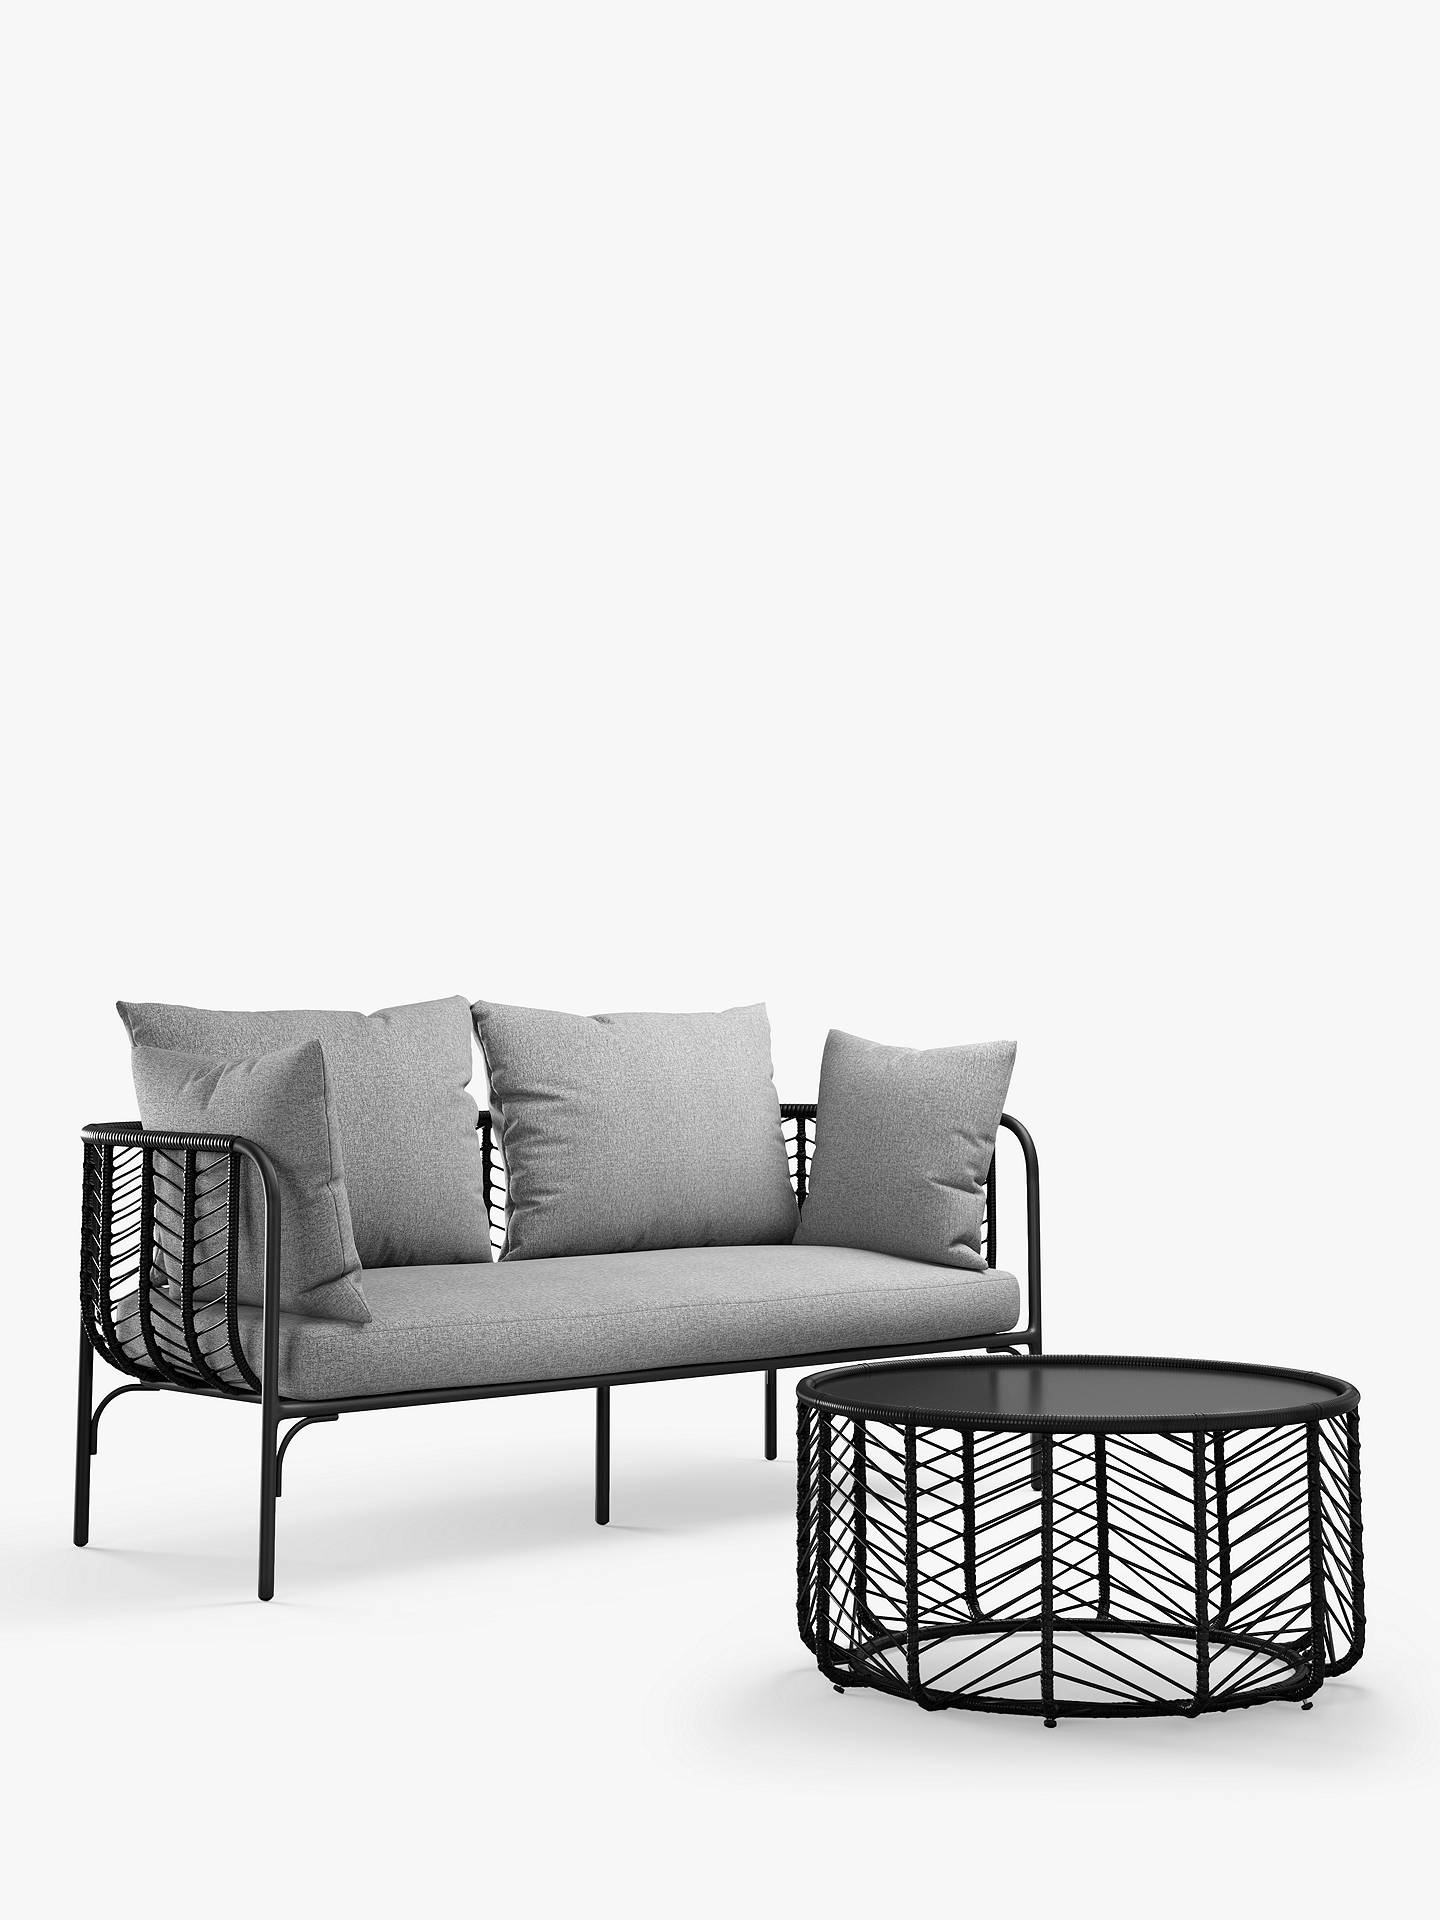 John Lewis & Partners Chevron 8-Seat Garden Sofa, Black/Grey